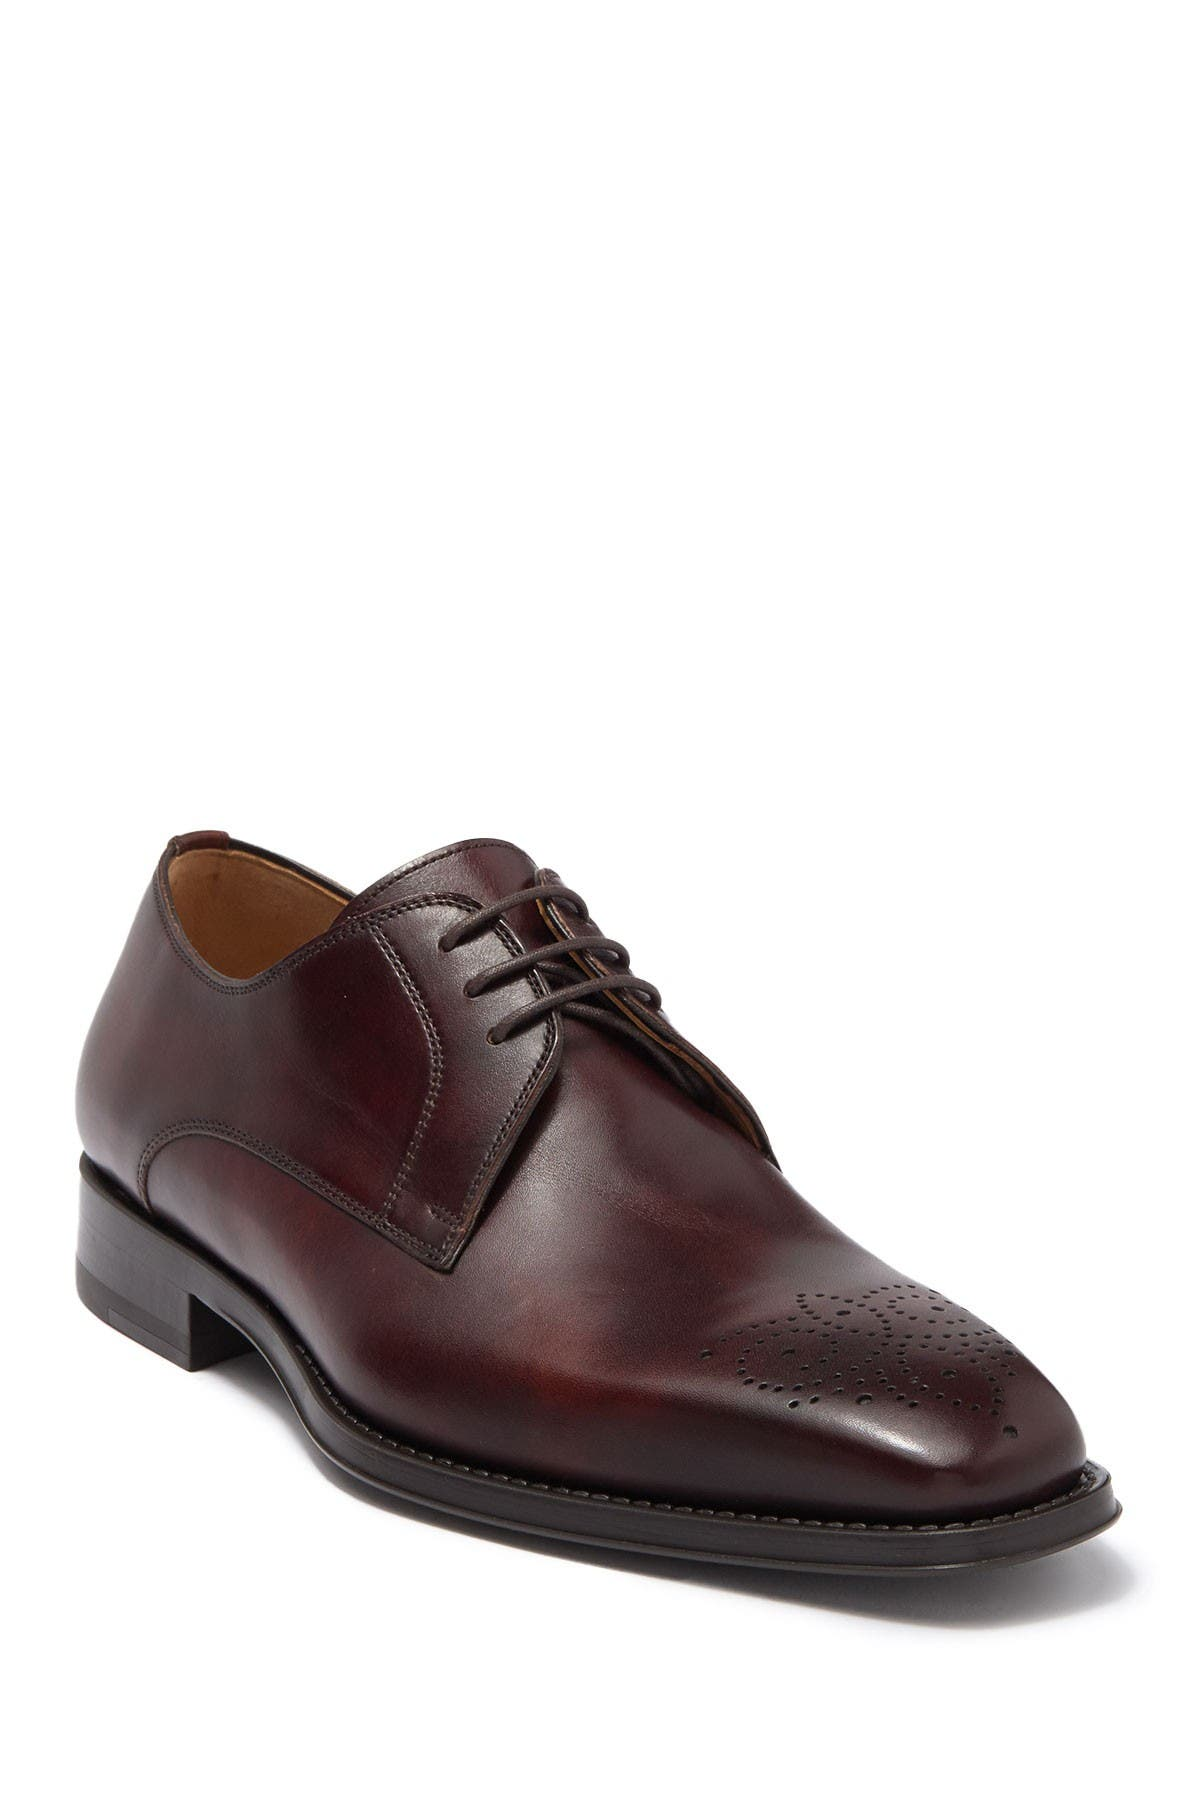 Image of Magnanni Gerardo II Brogue Derby